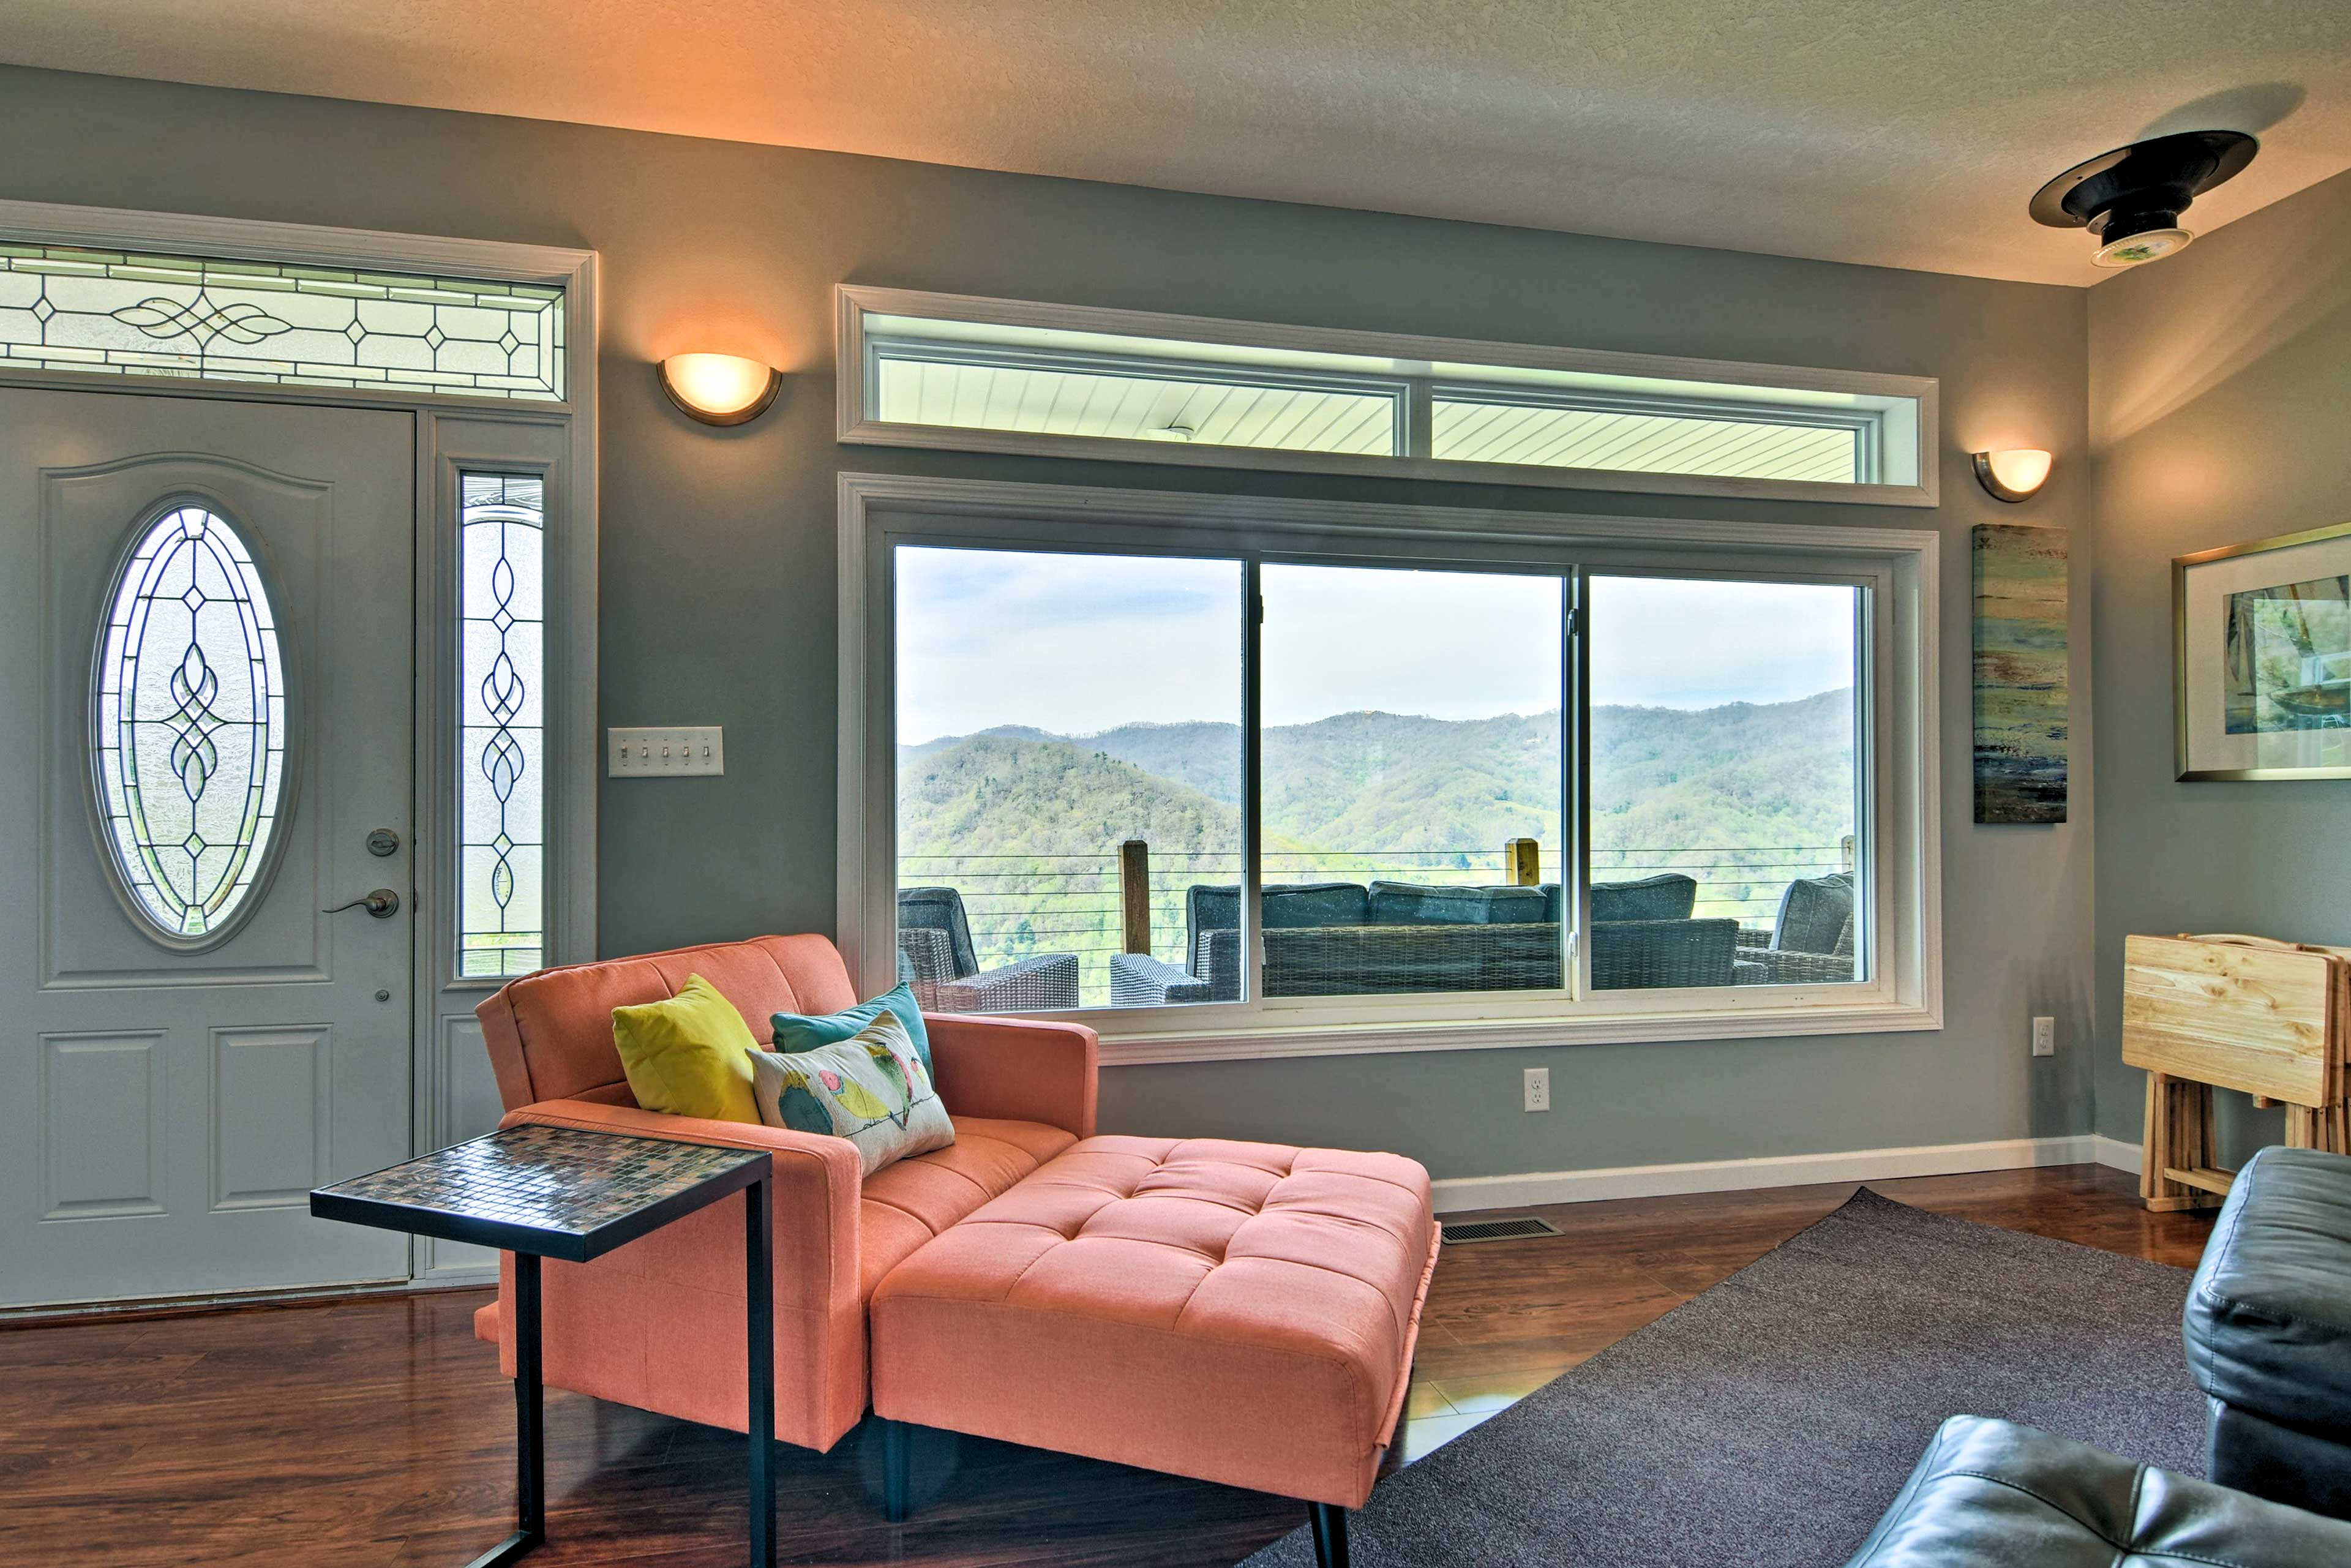 A full wall of picture windows brings the surrounding scenery indoors.